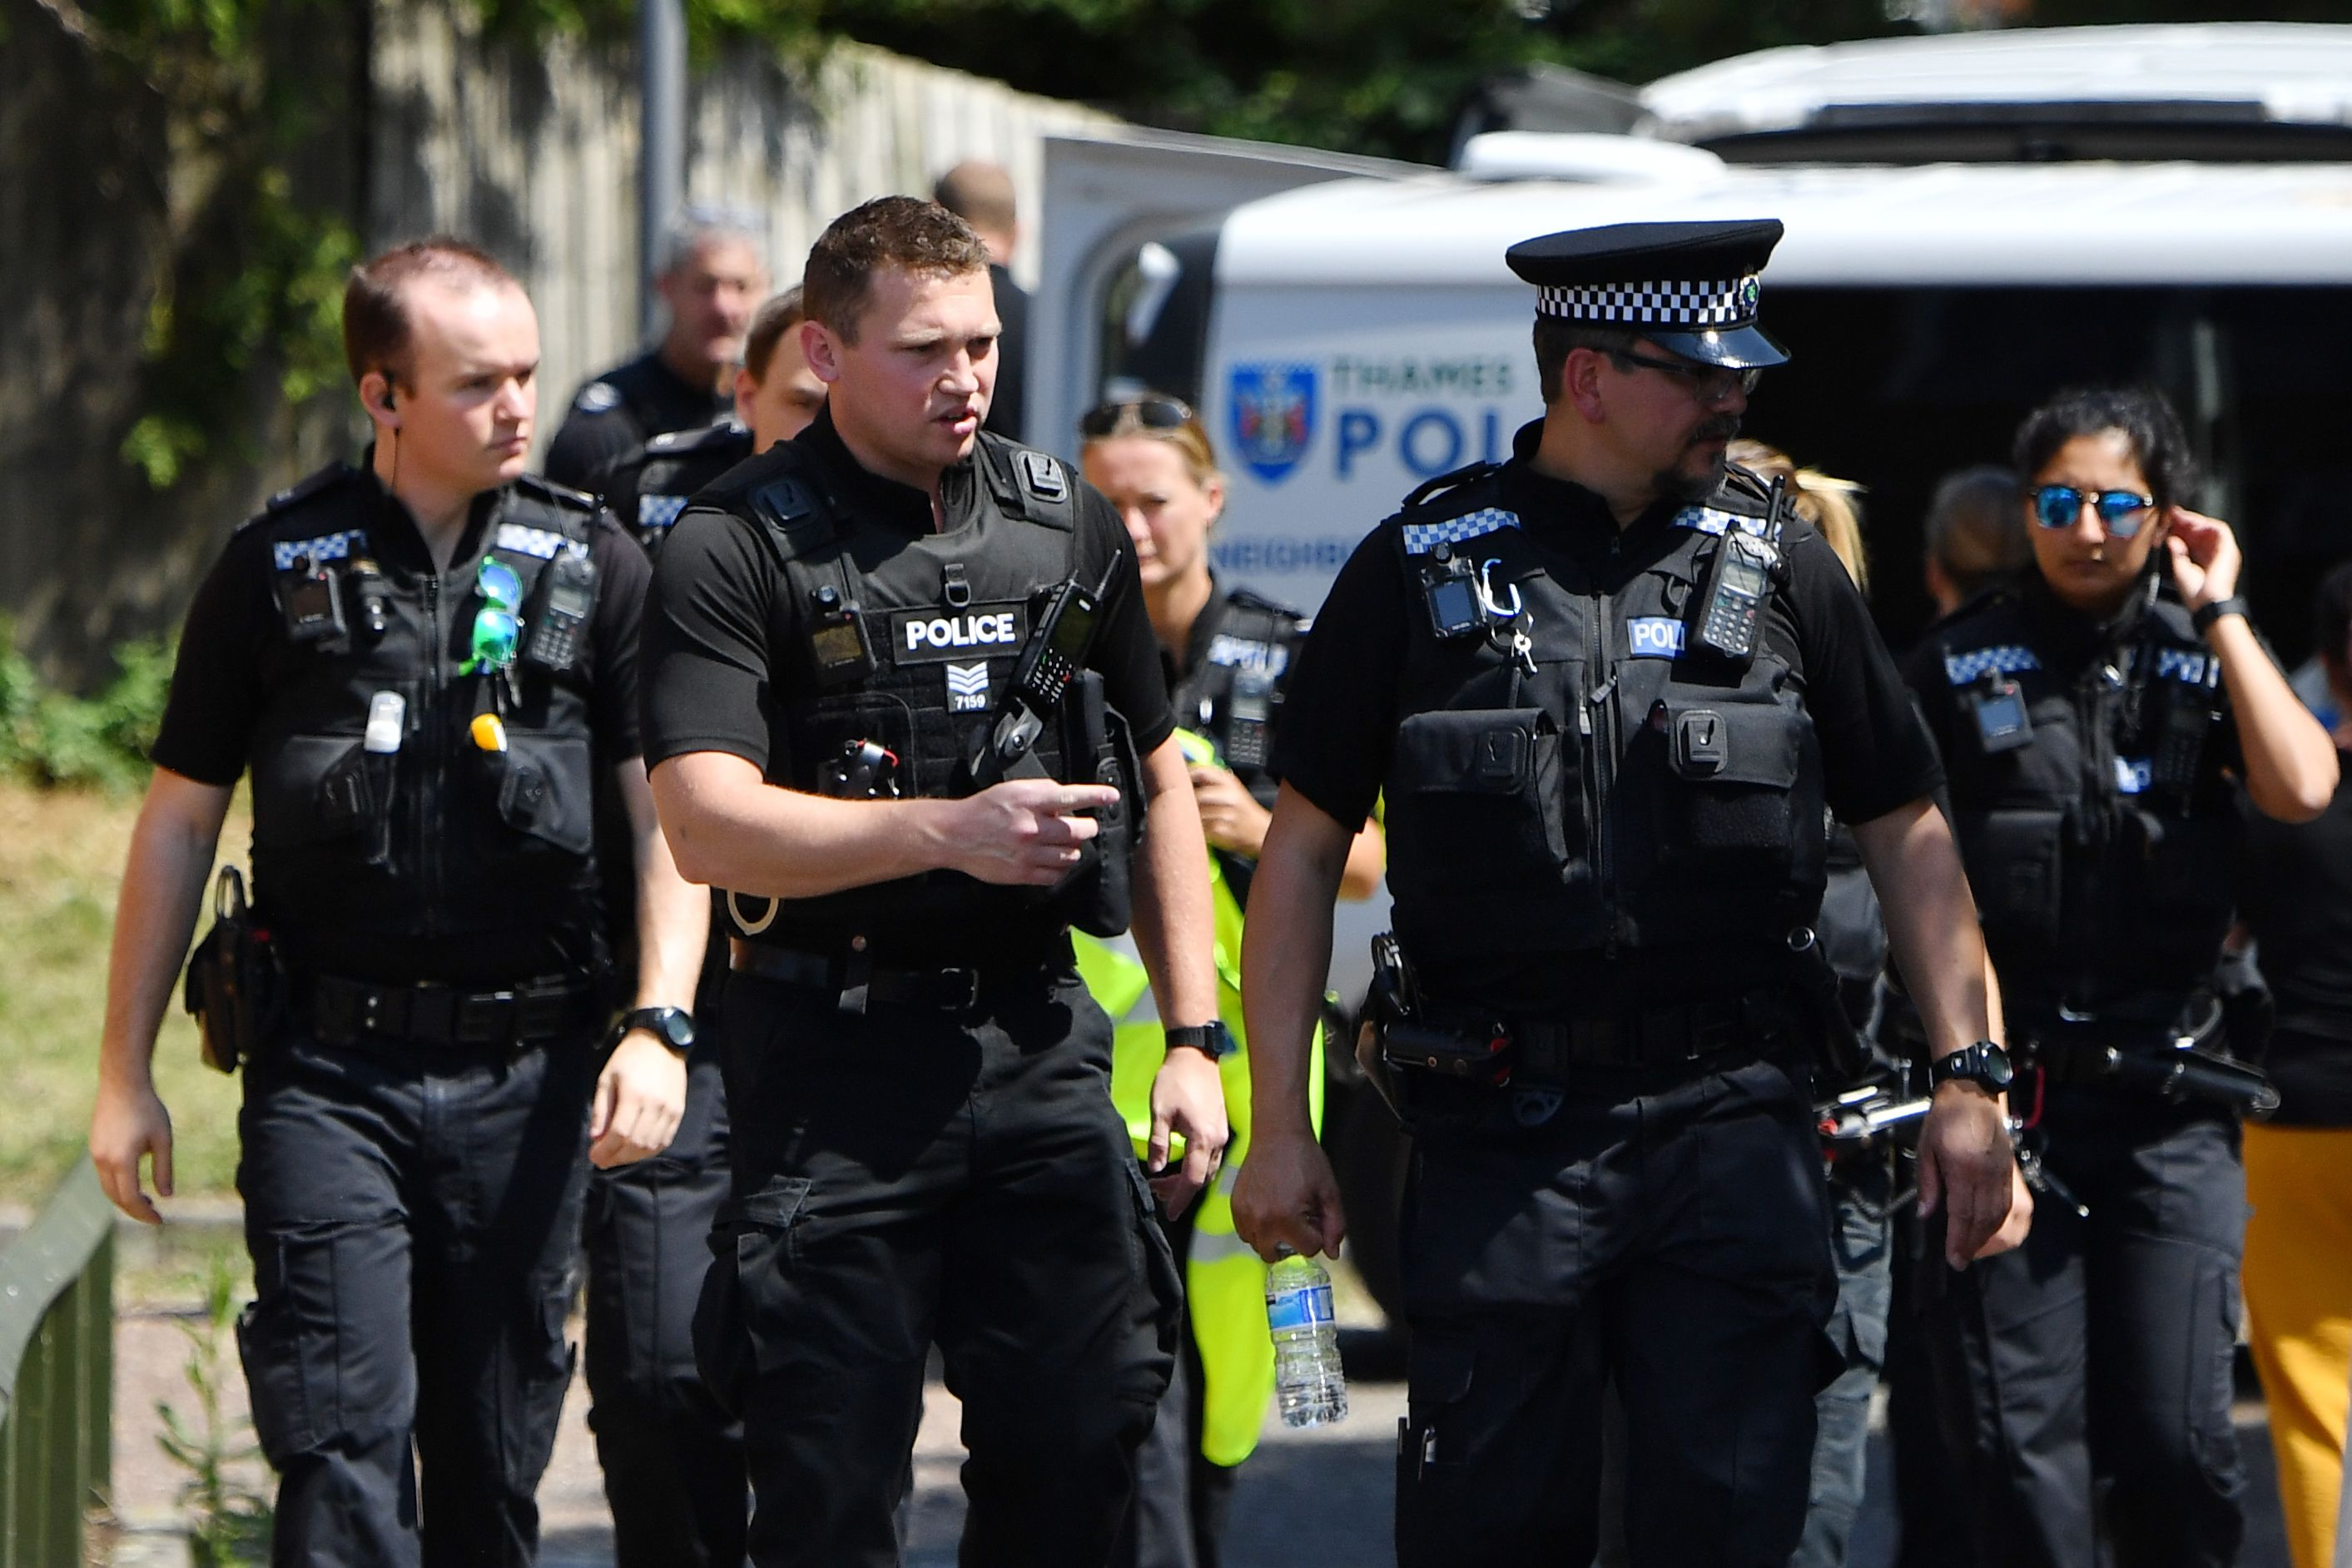 Police officers congregate outside a cordoned off block of flats where the suspect of a multiple stabbing incident lived in Reading, west of London, on June 23, 2020. - British counter-terrorism police have been given until June 27 to question a suspect widely identified as Libyan Khairi Saadallah in an attack which saw three people stabbed to death in a park, officers said. (Photo by Ben STANSALL / AFP) (Photo by BEN STANSALL/AFP via Getty Images)